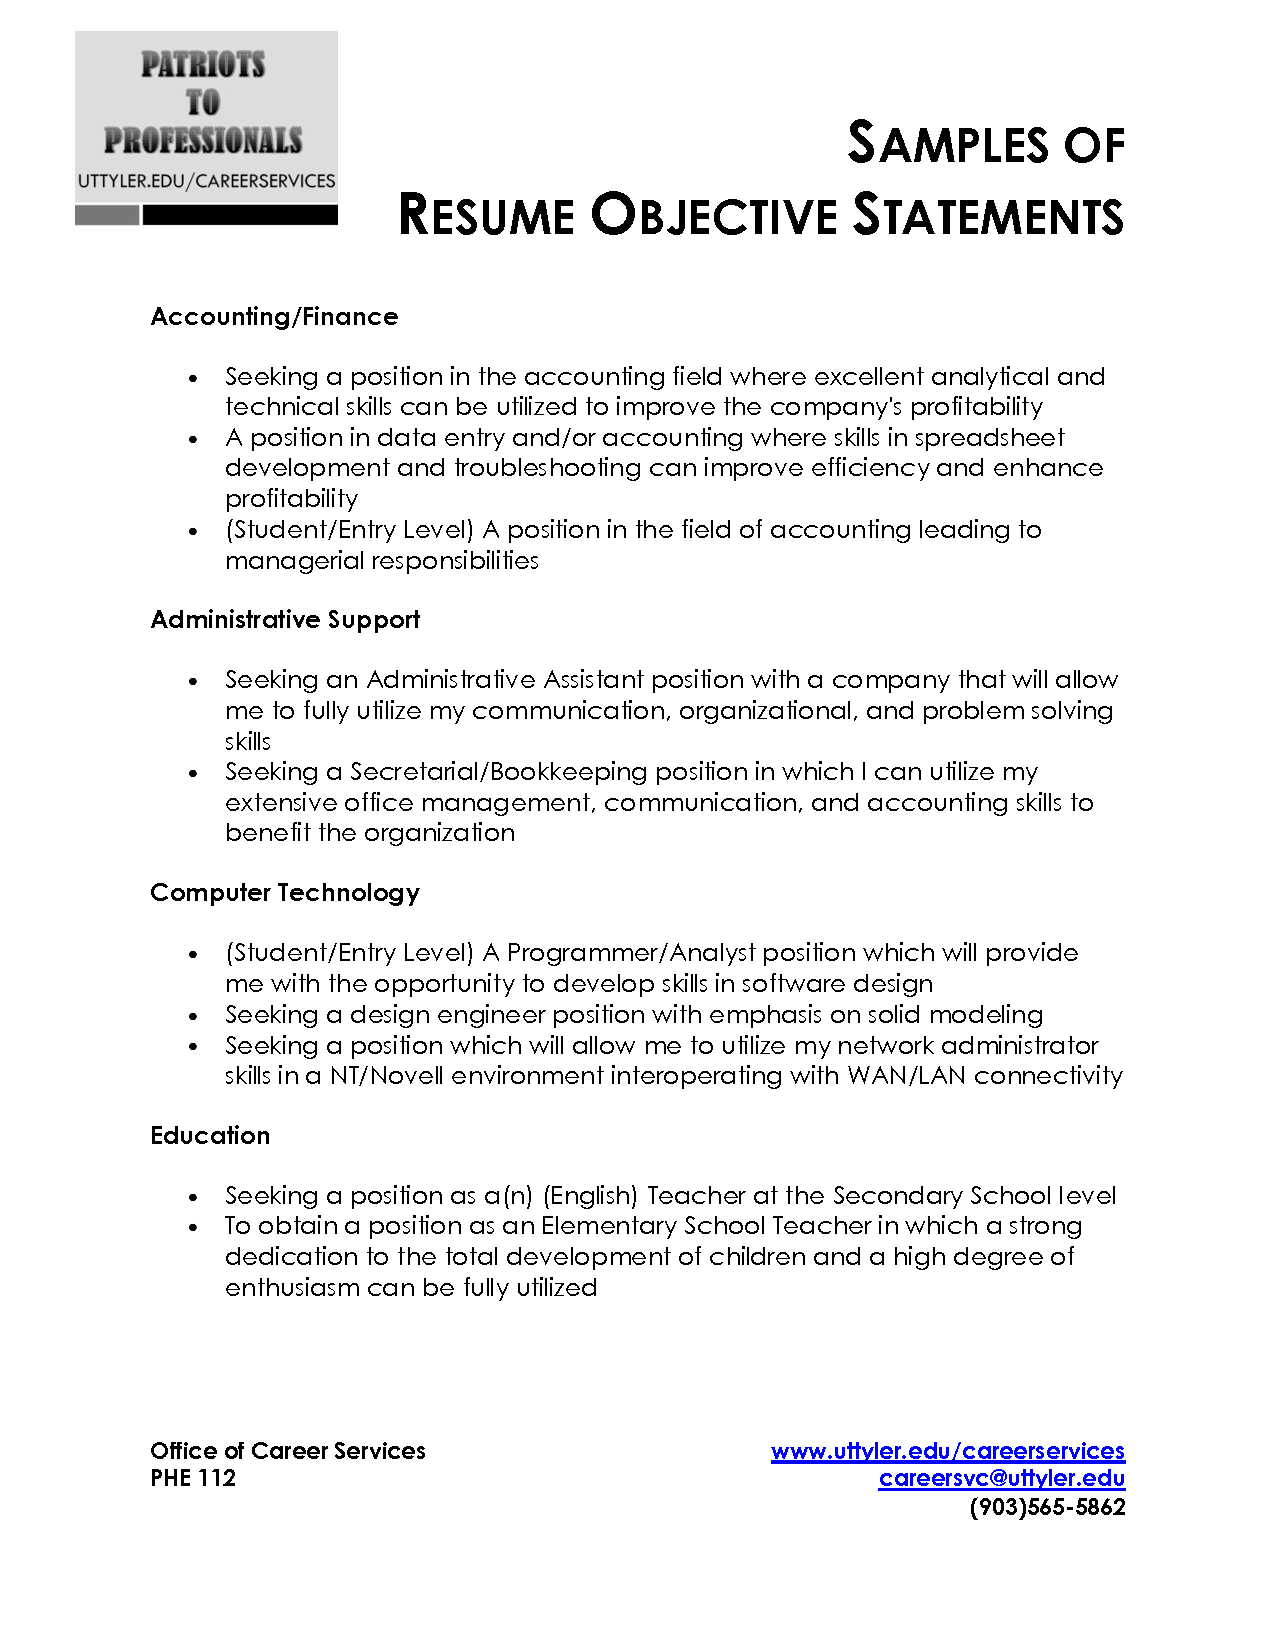 Administrative Objective For Resume Prepossessing Mardiyono Semair85 On Pinterest